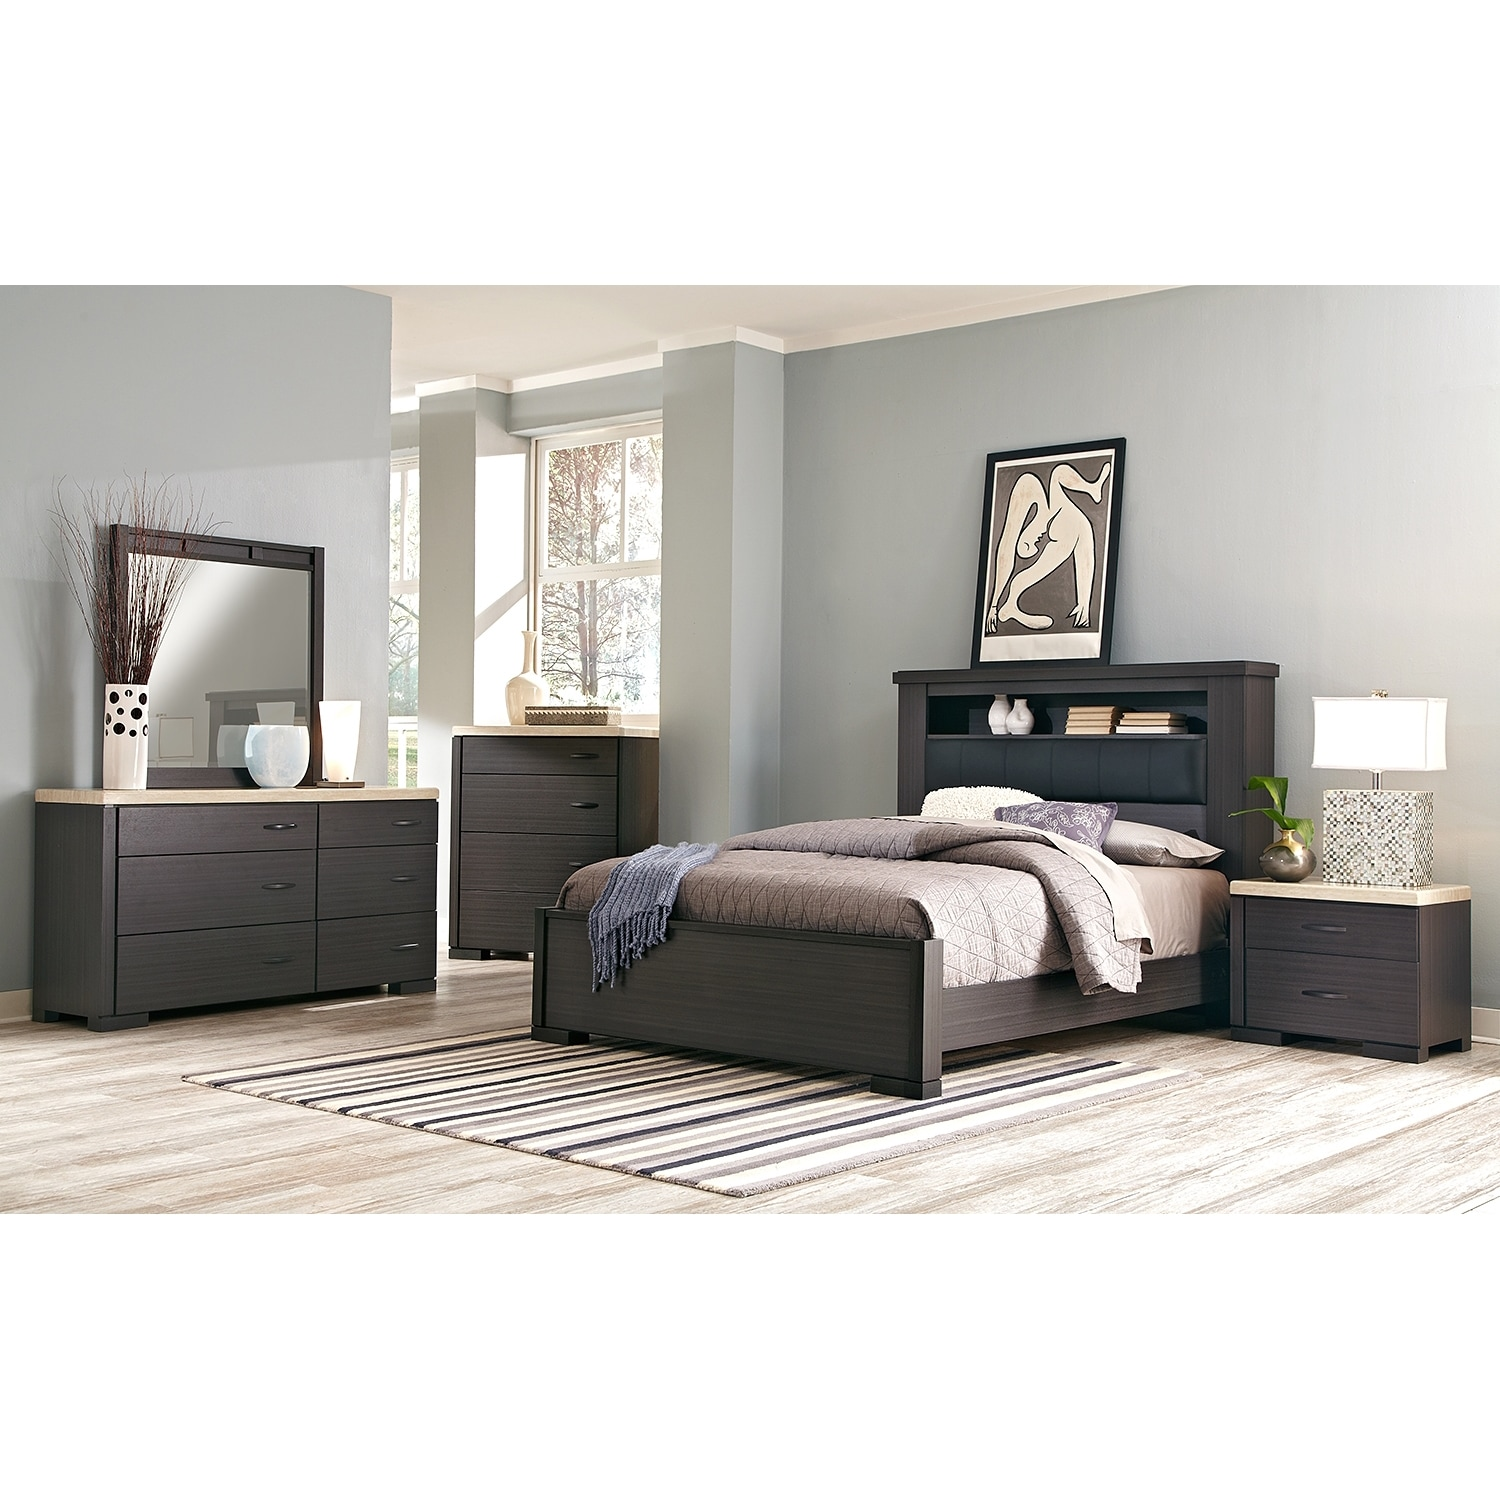 Hover to zoom. Camino 7 Piece Queen Bedroom Set   Charcoal and Ivory   Value City